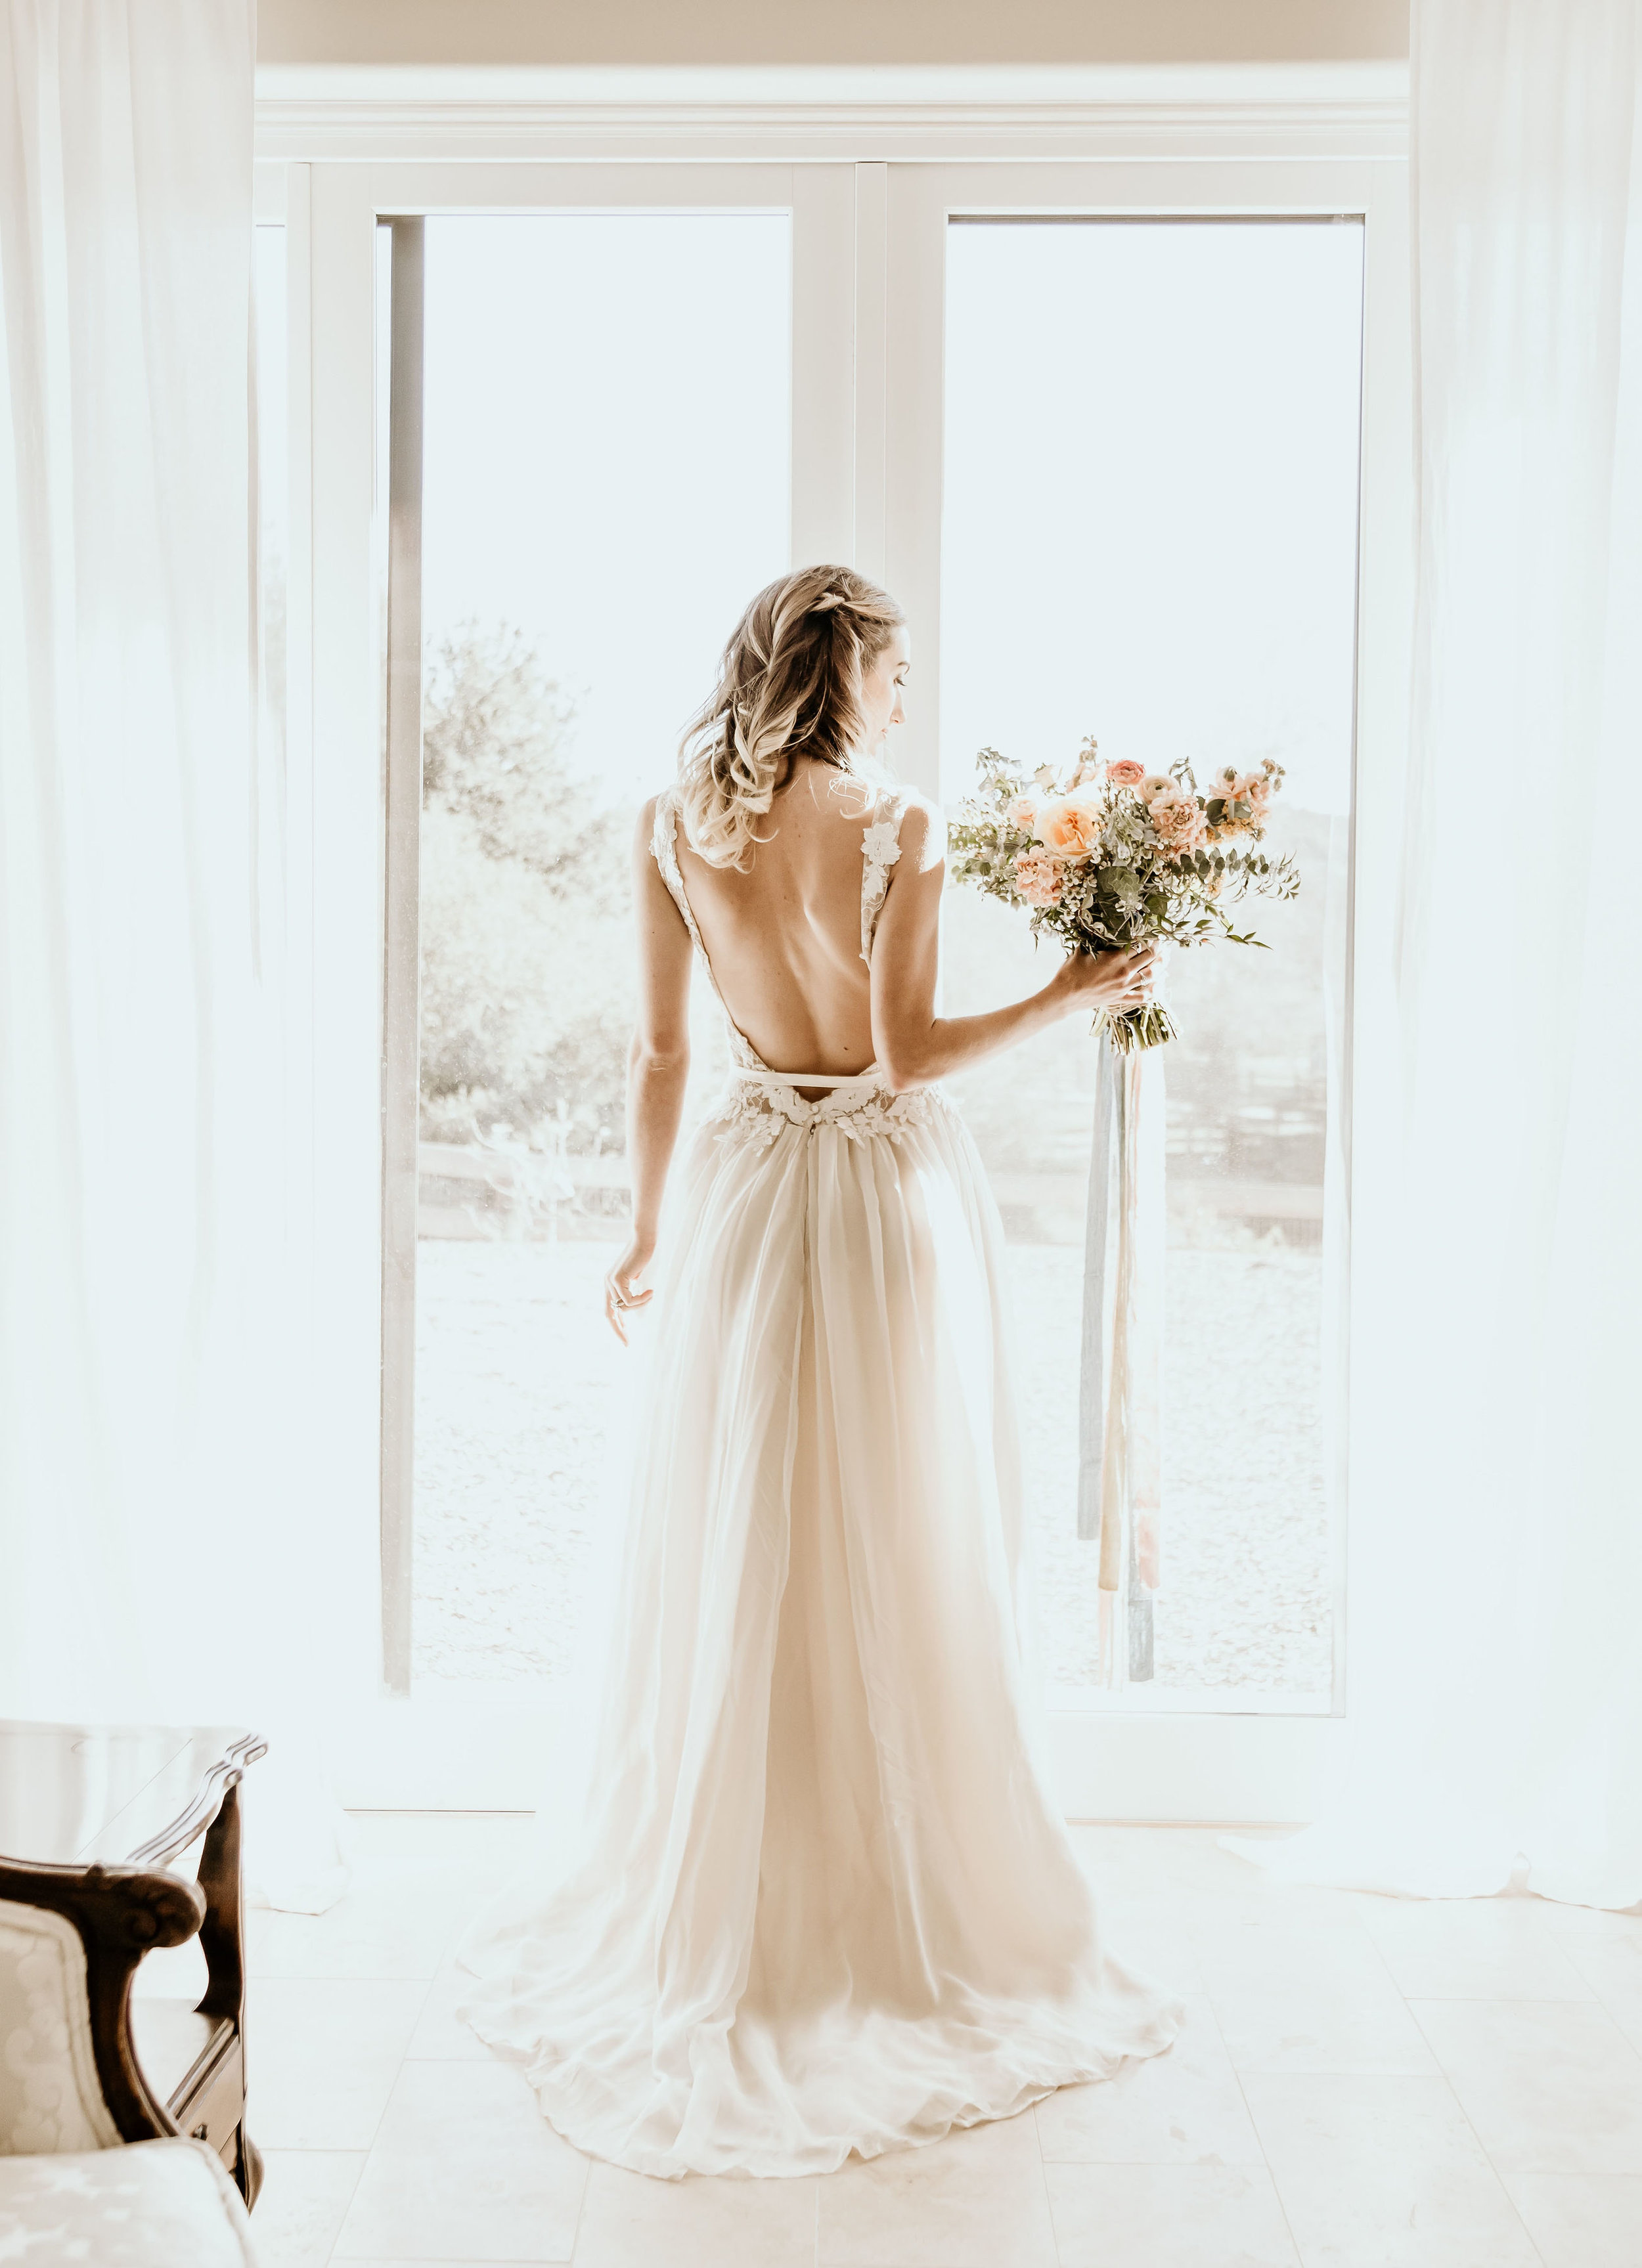 Alice in Wonderland bride standing in front of the sliding glass door in the bridal suite at Chateau Adare in Murrieta.